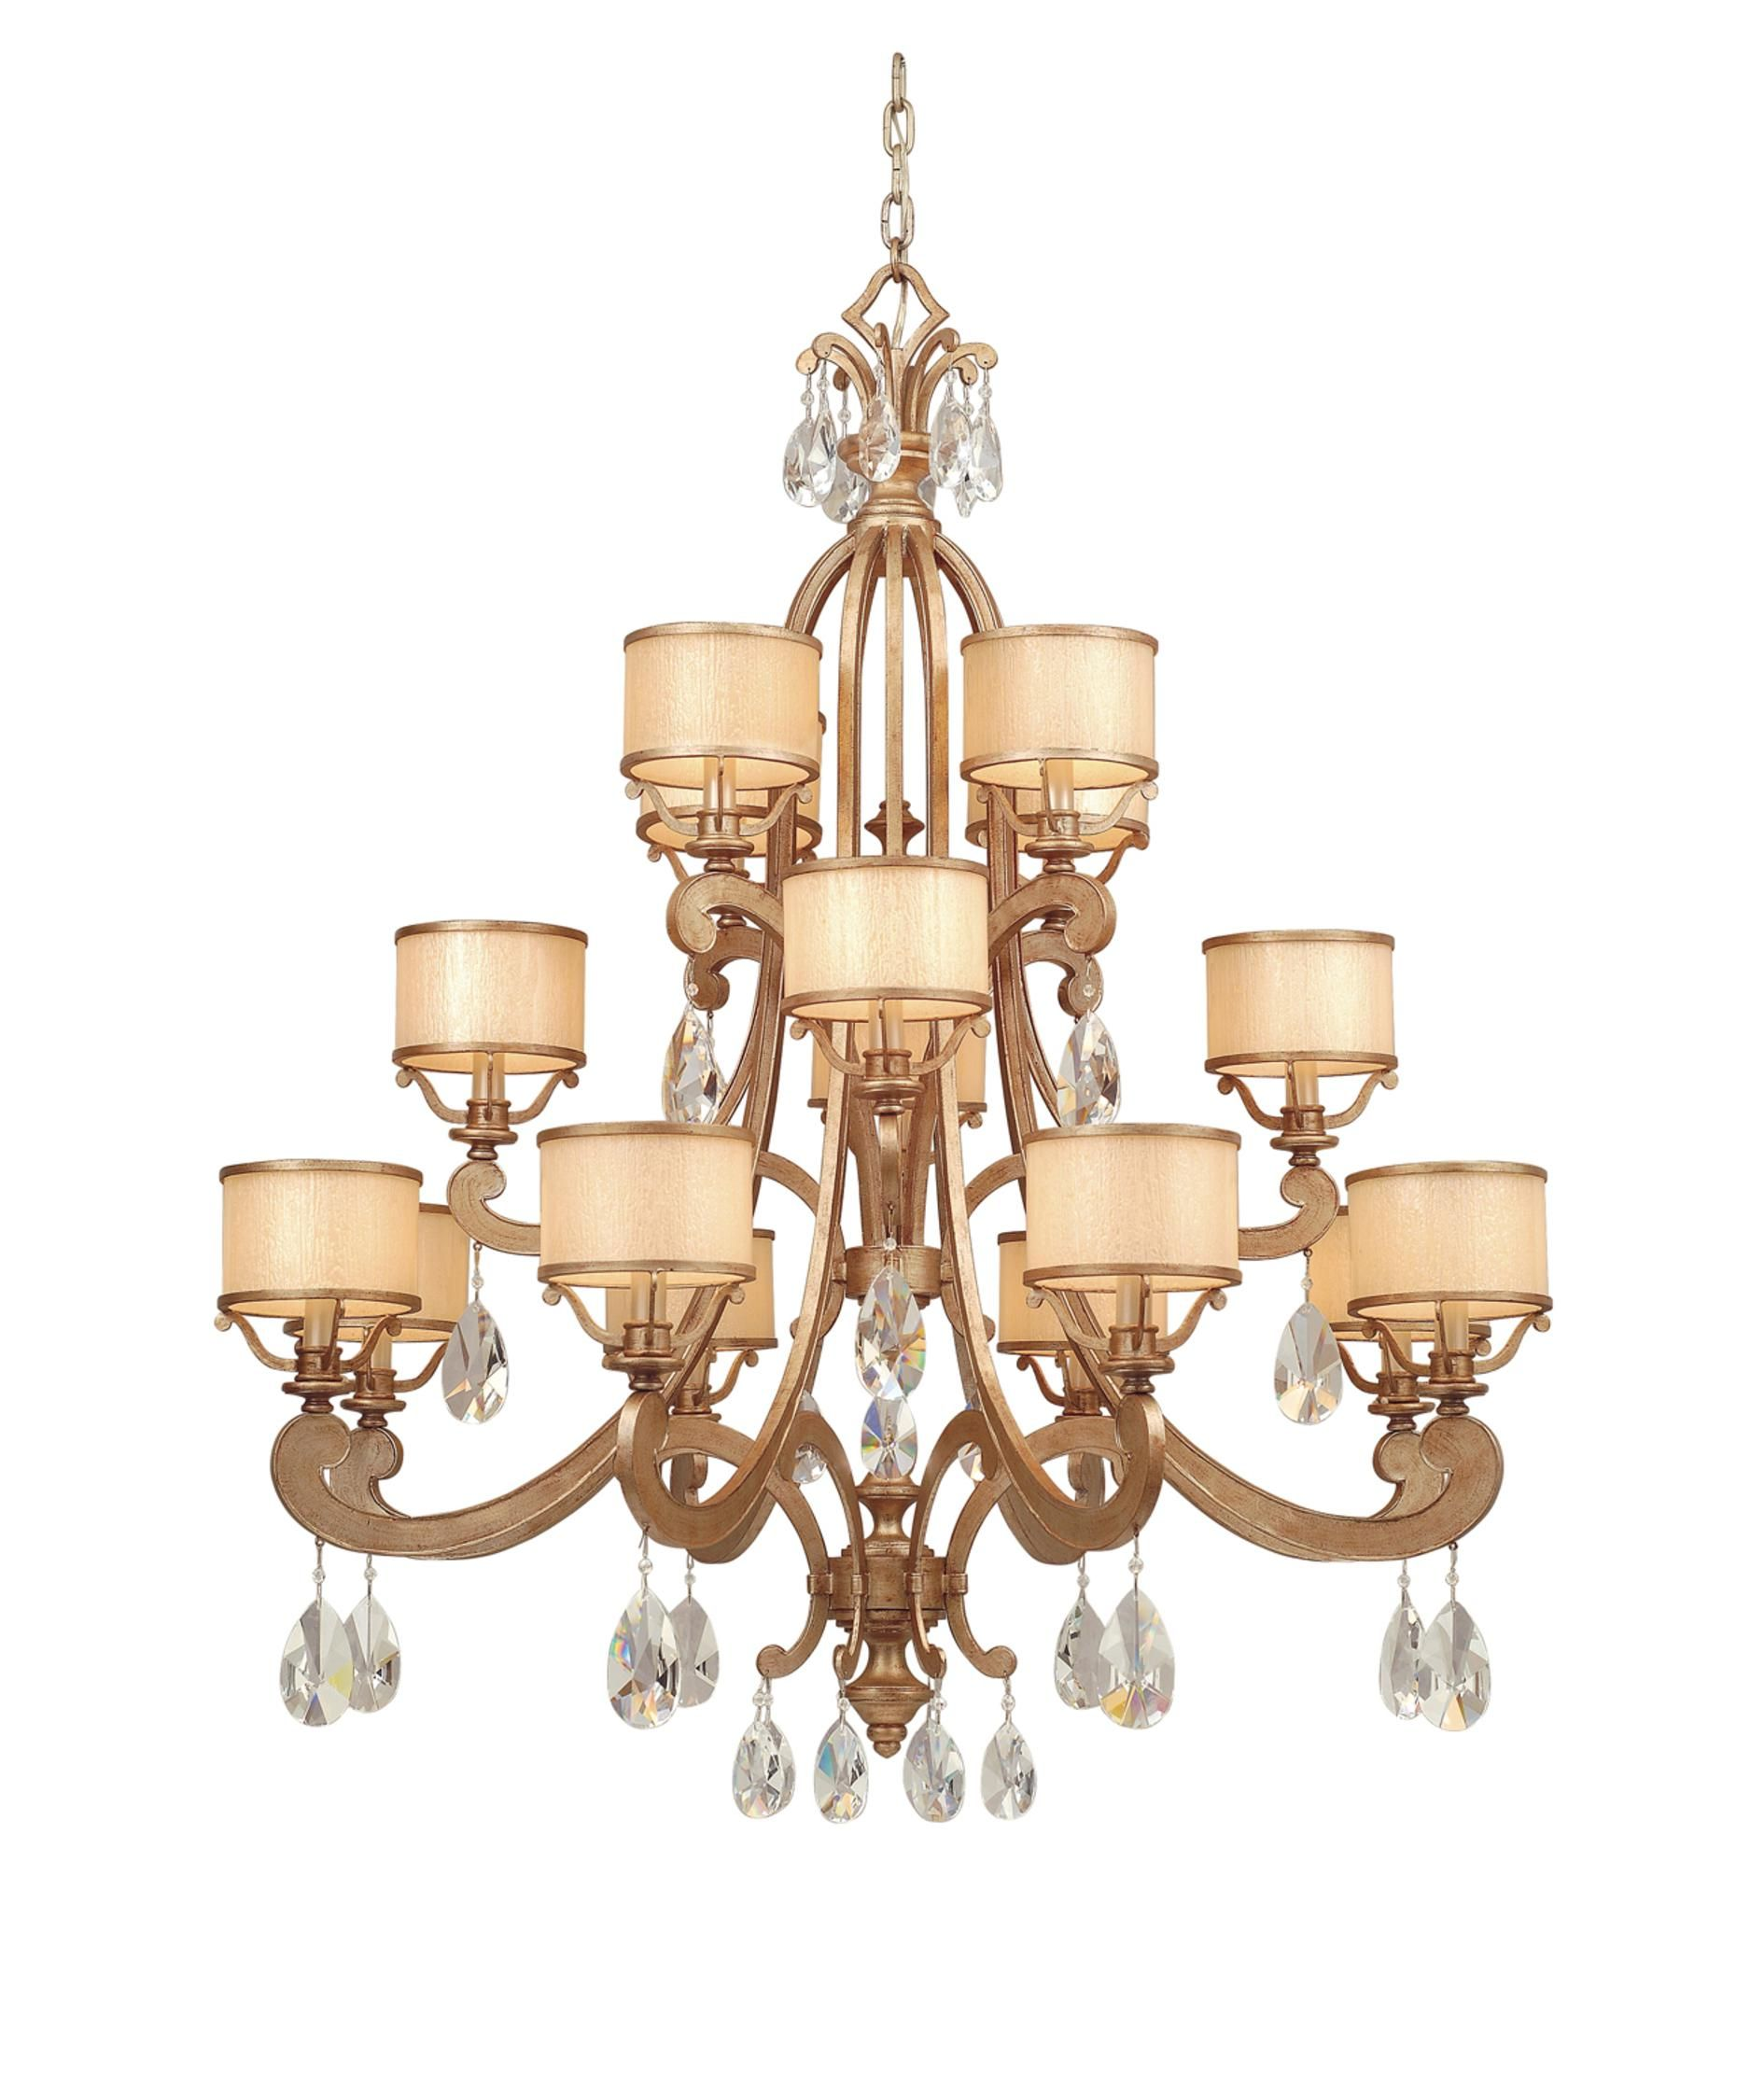 Corbett lighting roma 43 inch wide 16 light chandelier hampton bay corbett lighting ro 016 roma 43 inch chandelier aloadofball Gallery